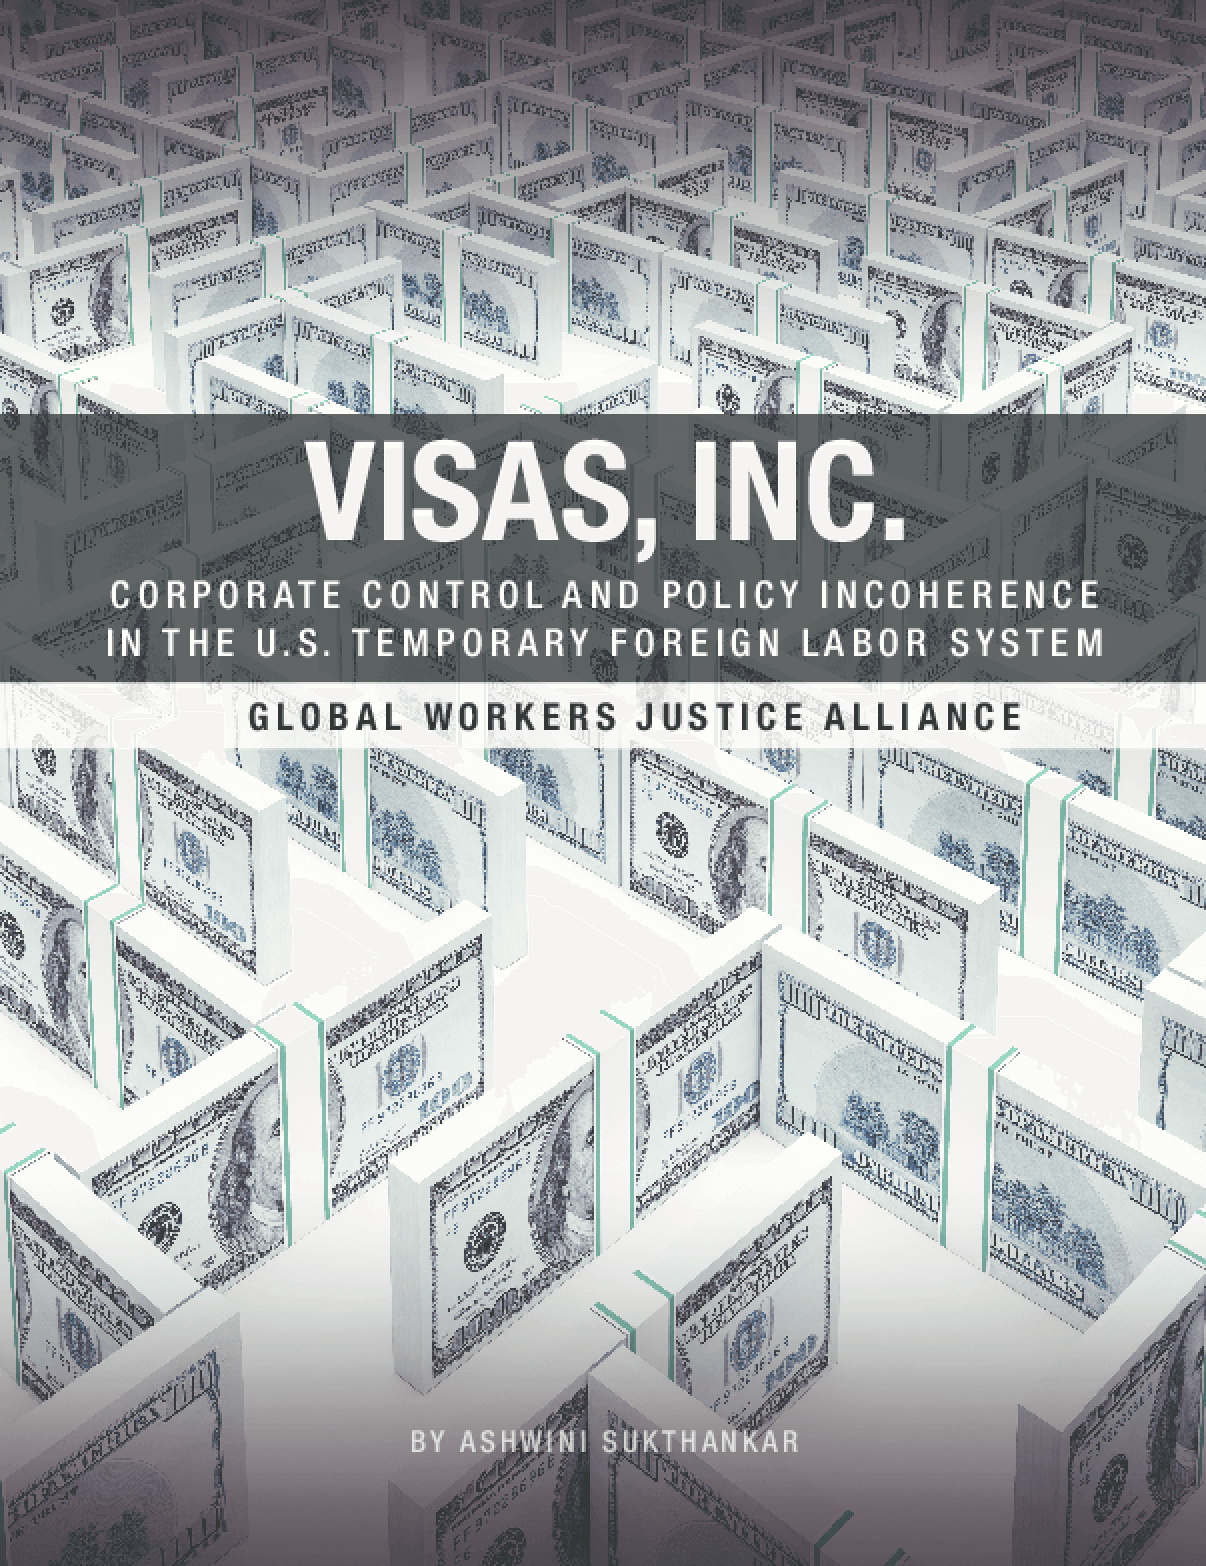 Visas, Inc: Corporate Control and Policy Incoherence in the U.S. Temporary Foreign Labor System